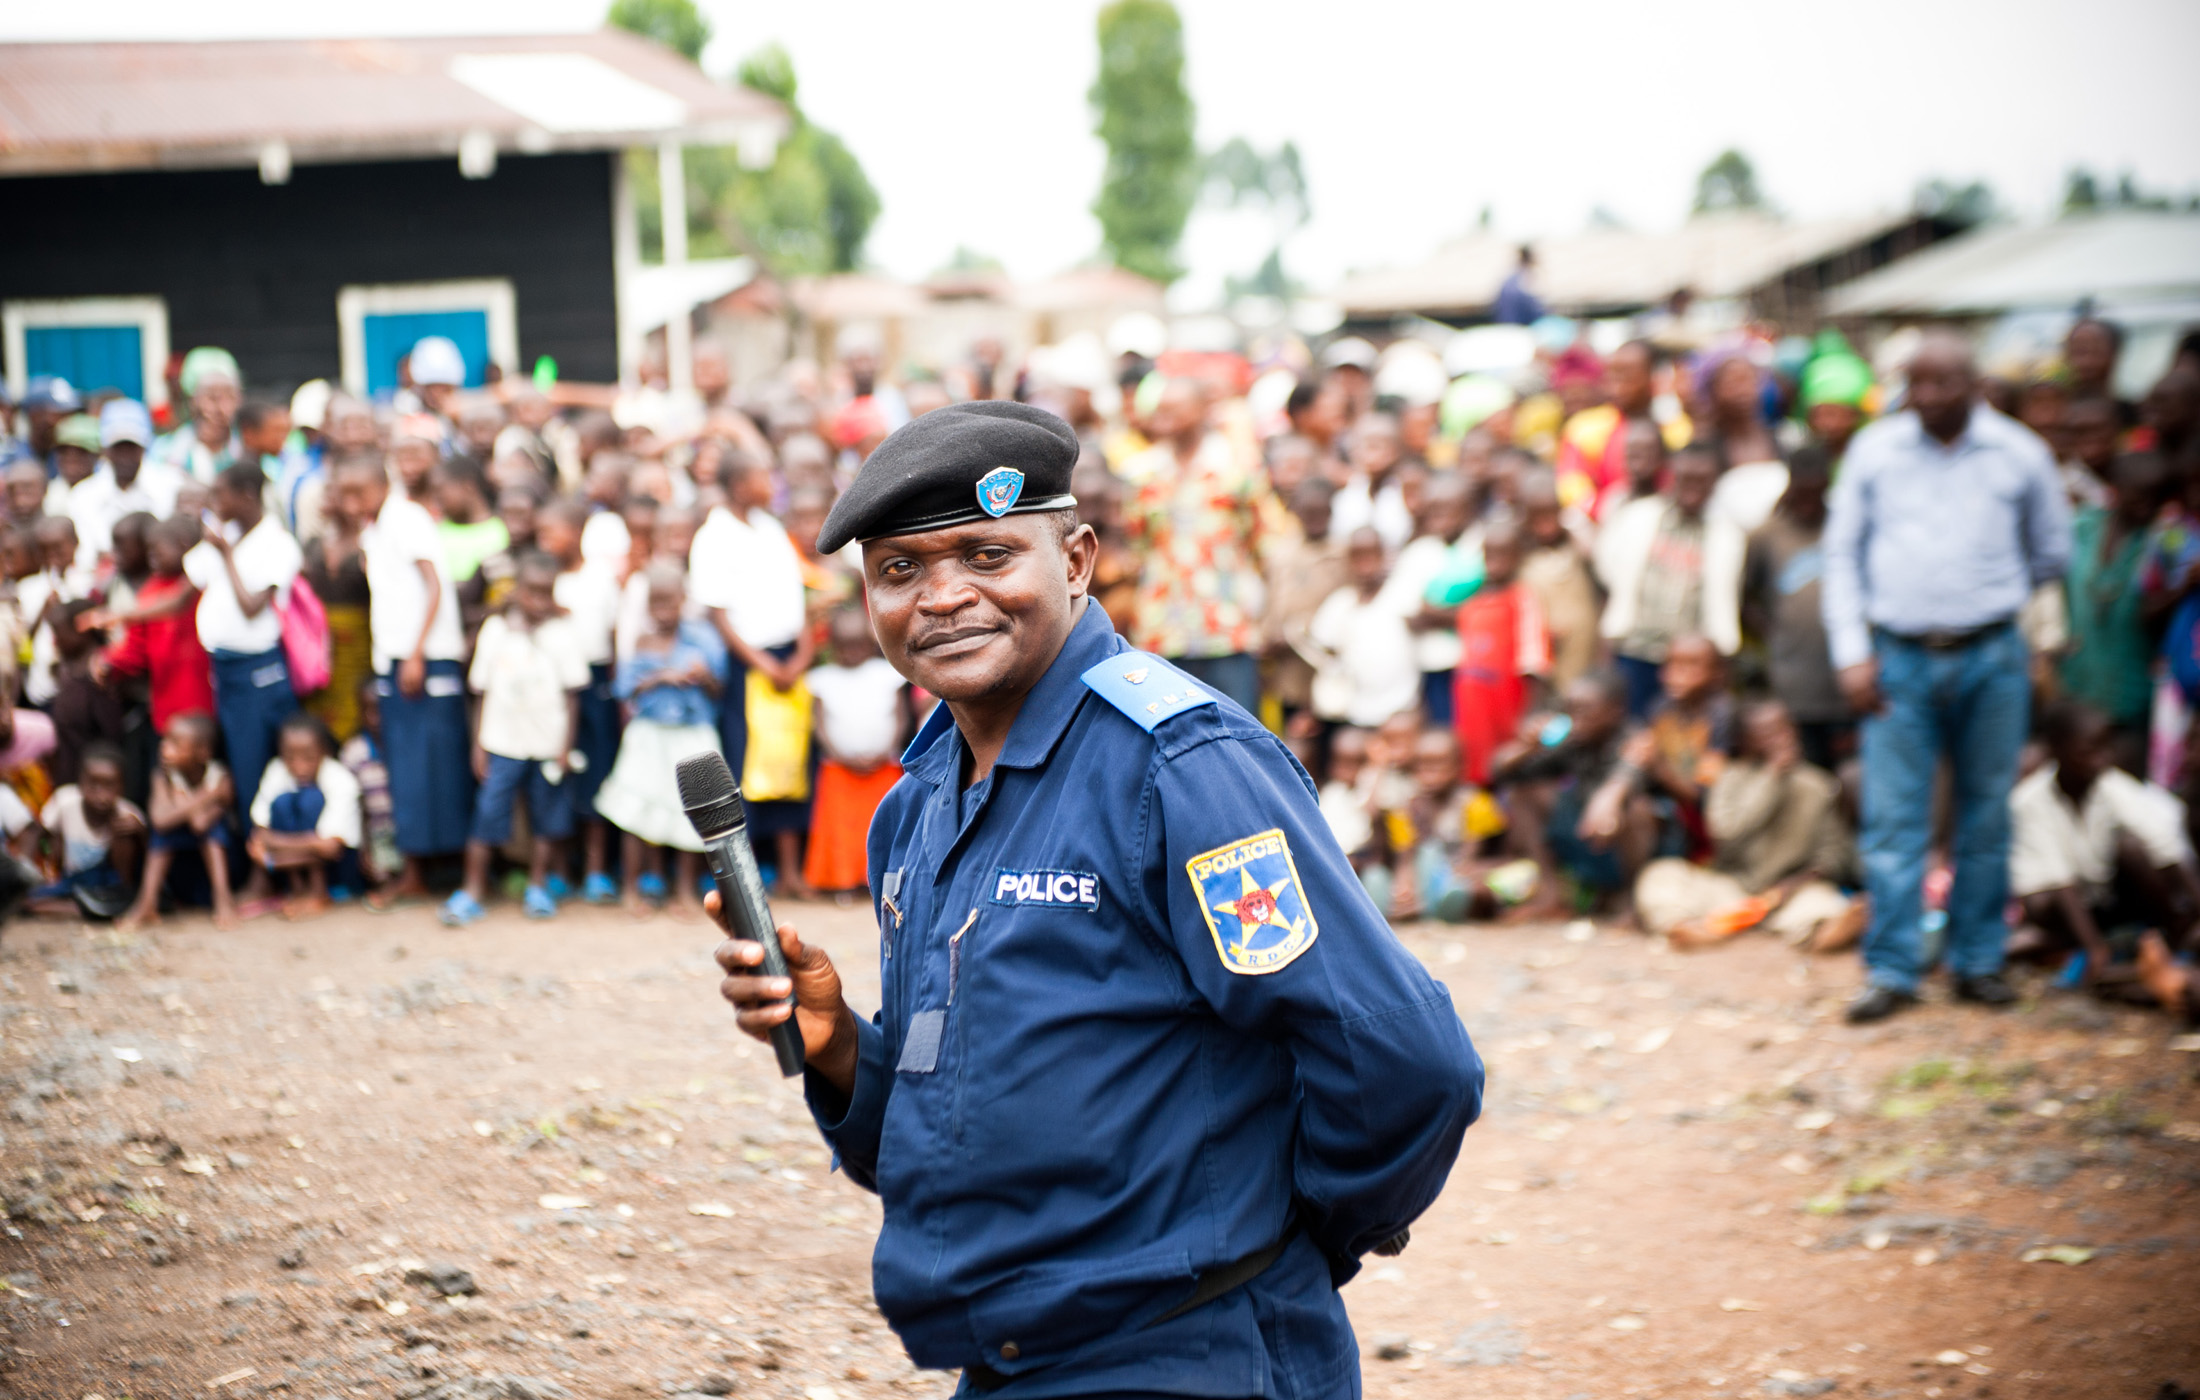 Police Major David Bodeli tells the population of Kanyaruchinya, DRC that the increased police presence is there to restore normalcy and increase security, especially in relation to sexual violence, on 28 Sept. 2013